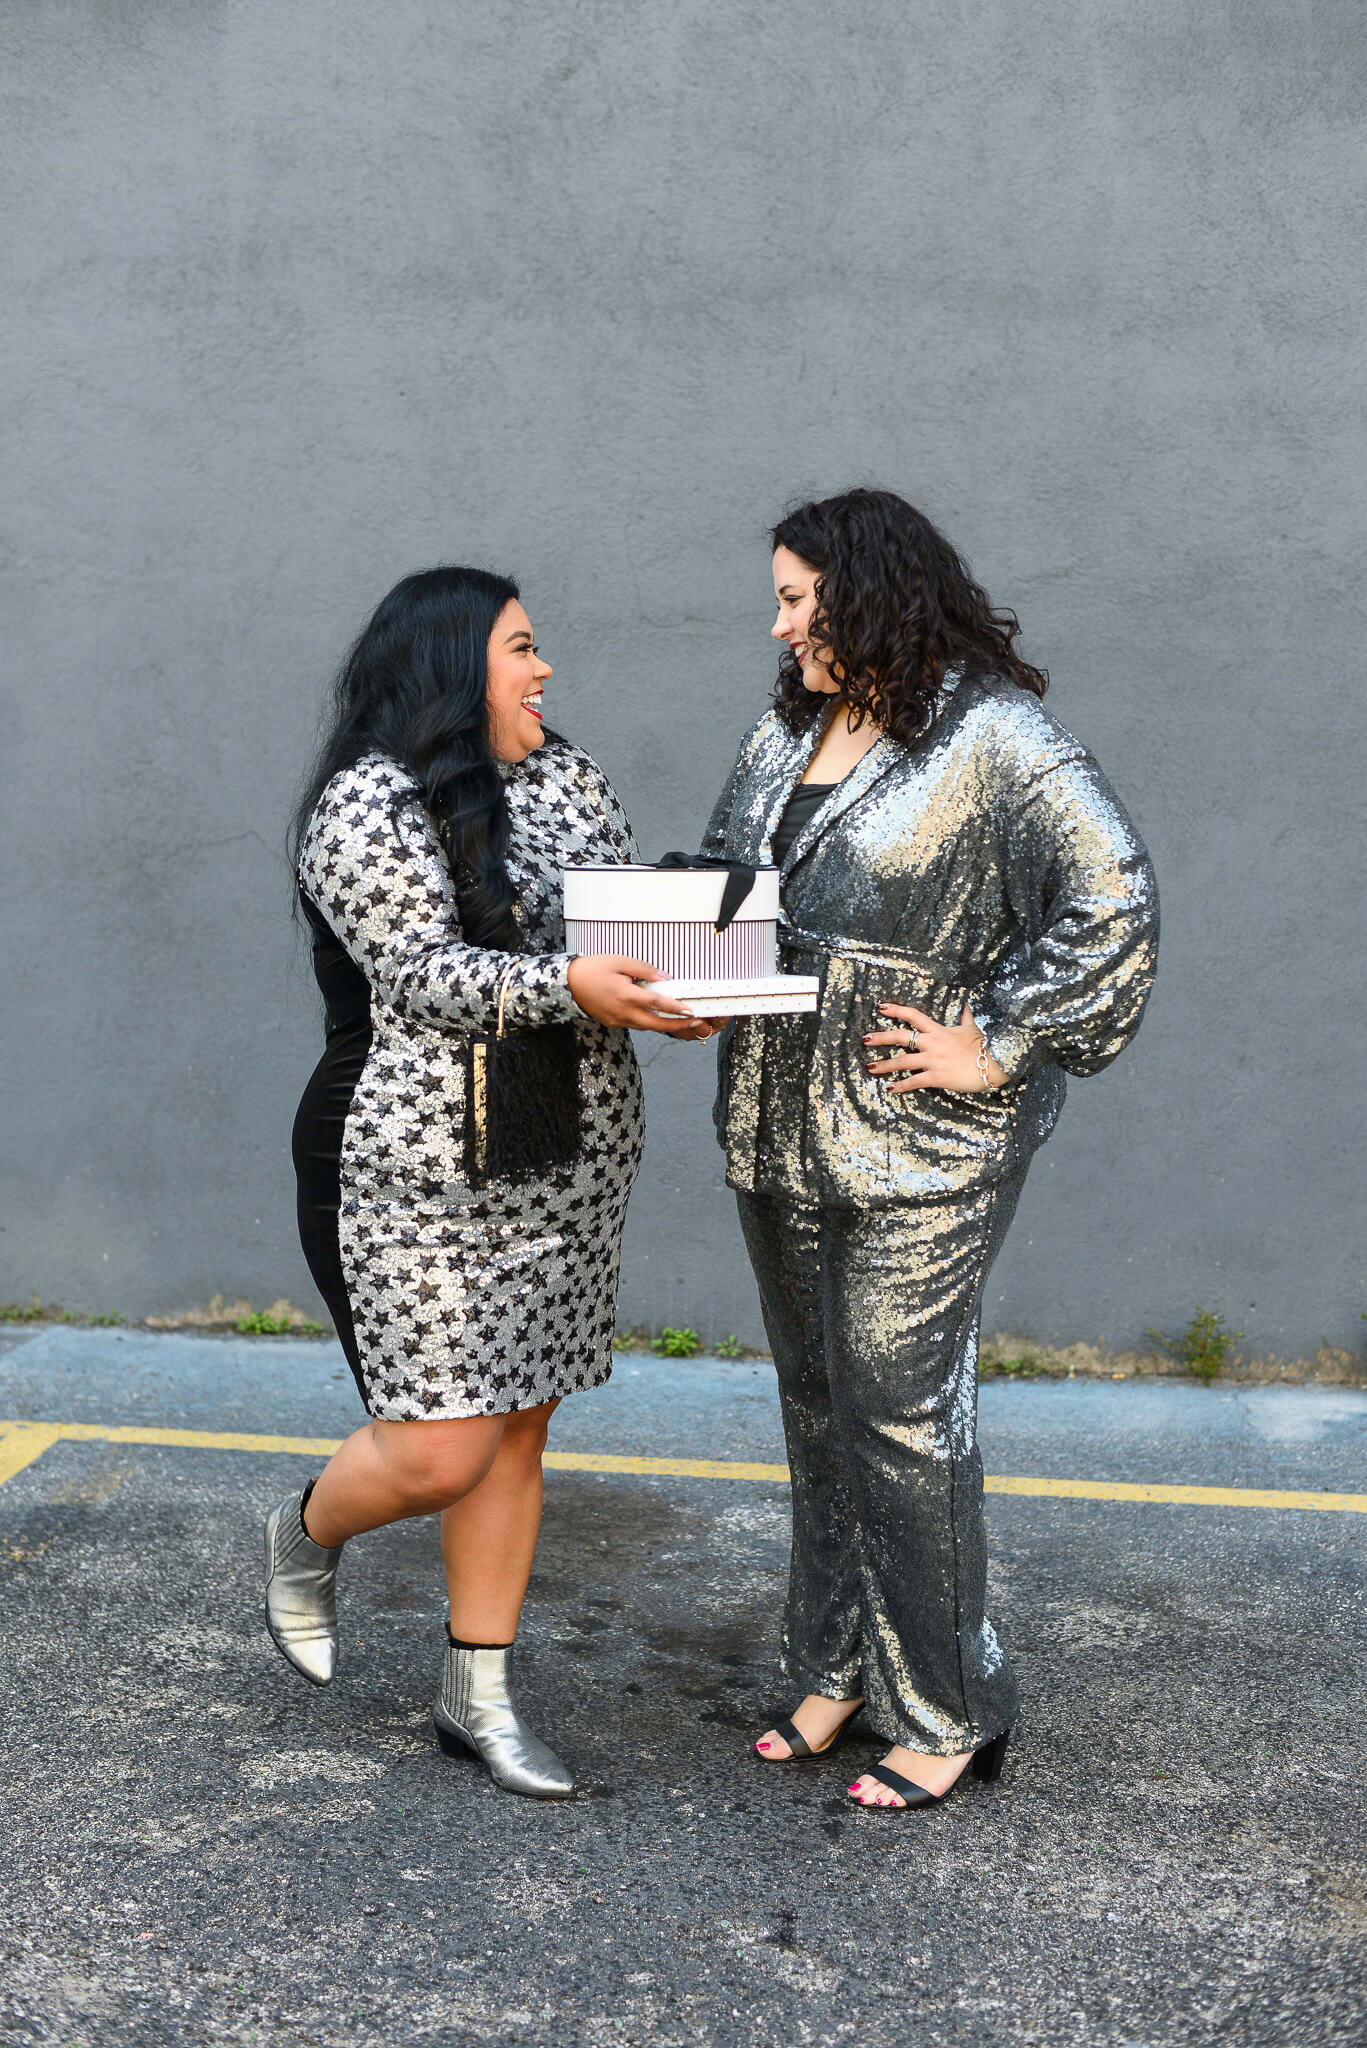 I love celebrating NYE with friends, especially when you are twinning in silver sequins